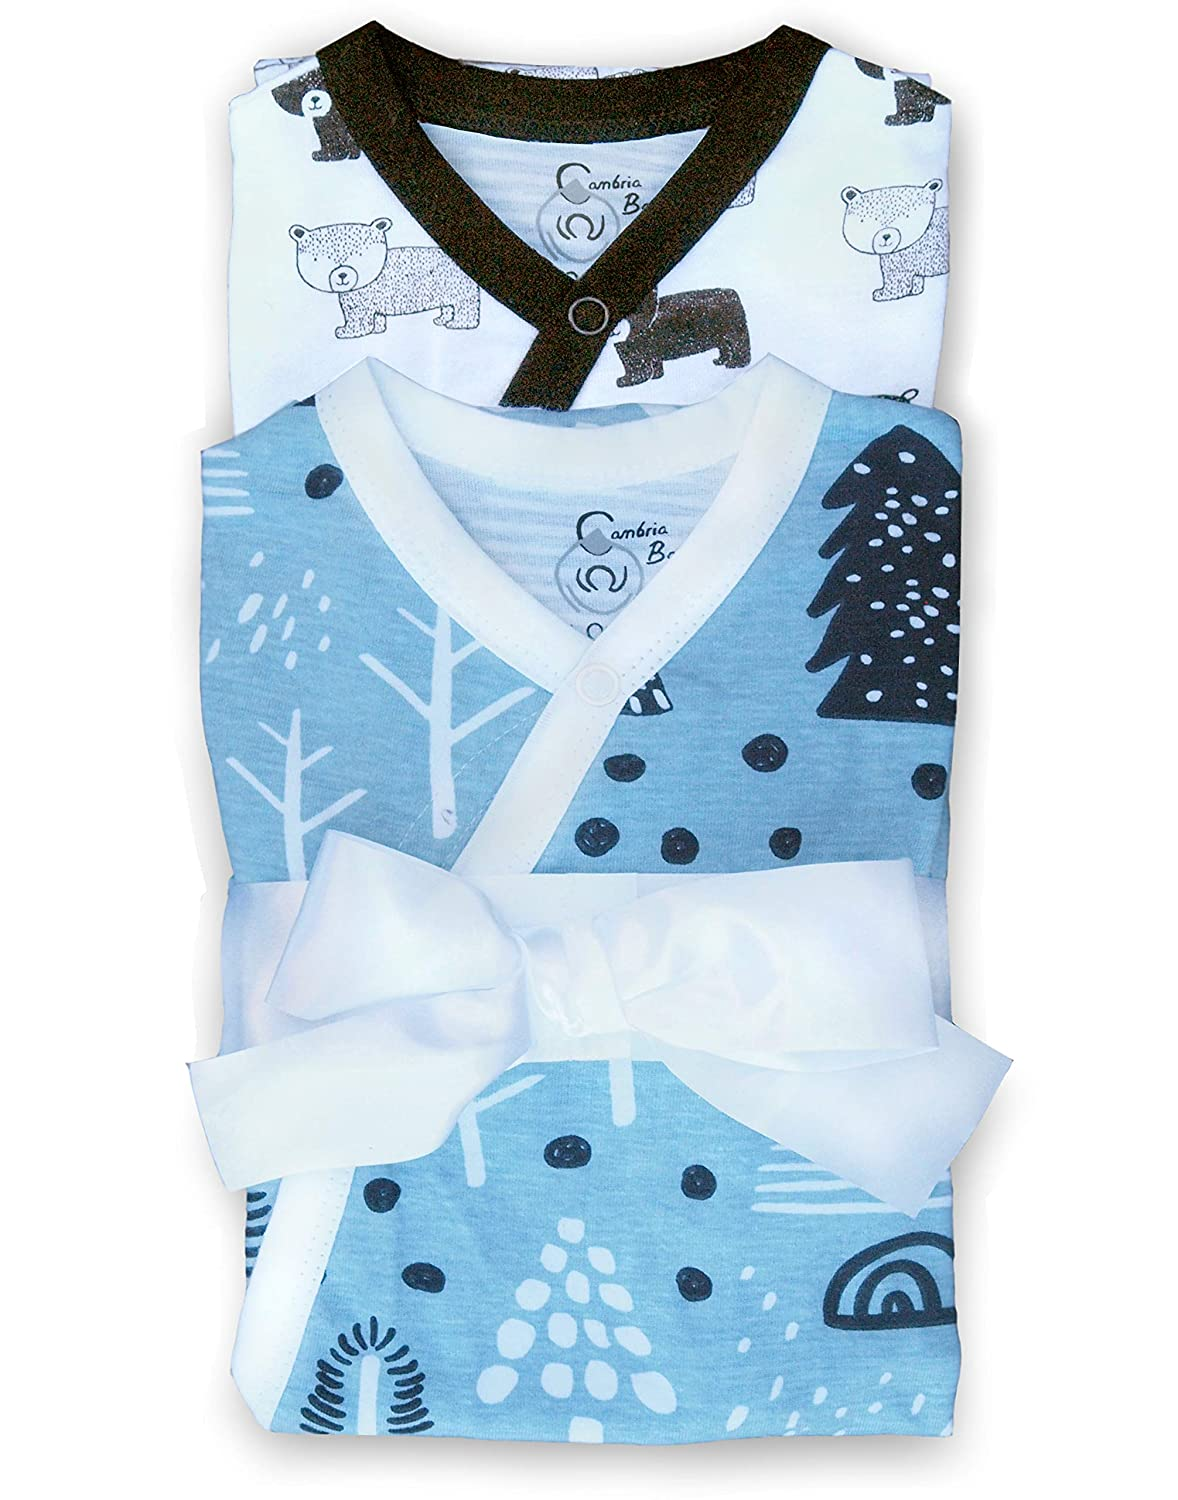 Ceremony Crush adjustable in organic white cotton from birth to 6 years